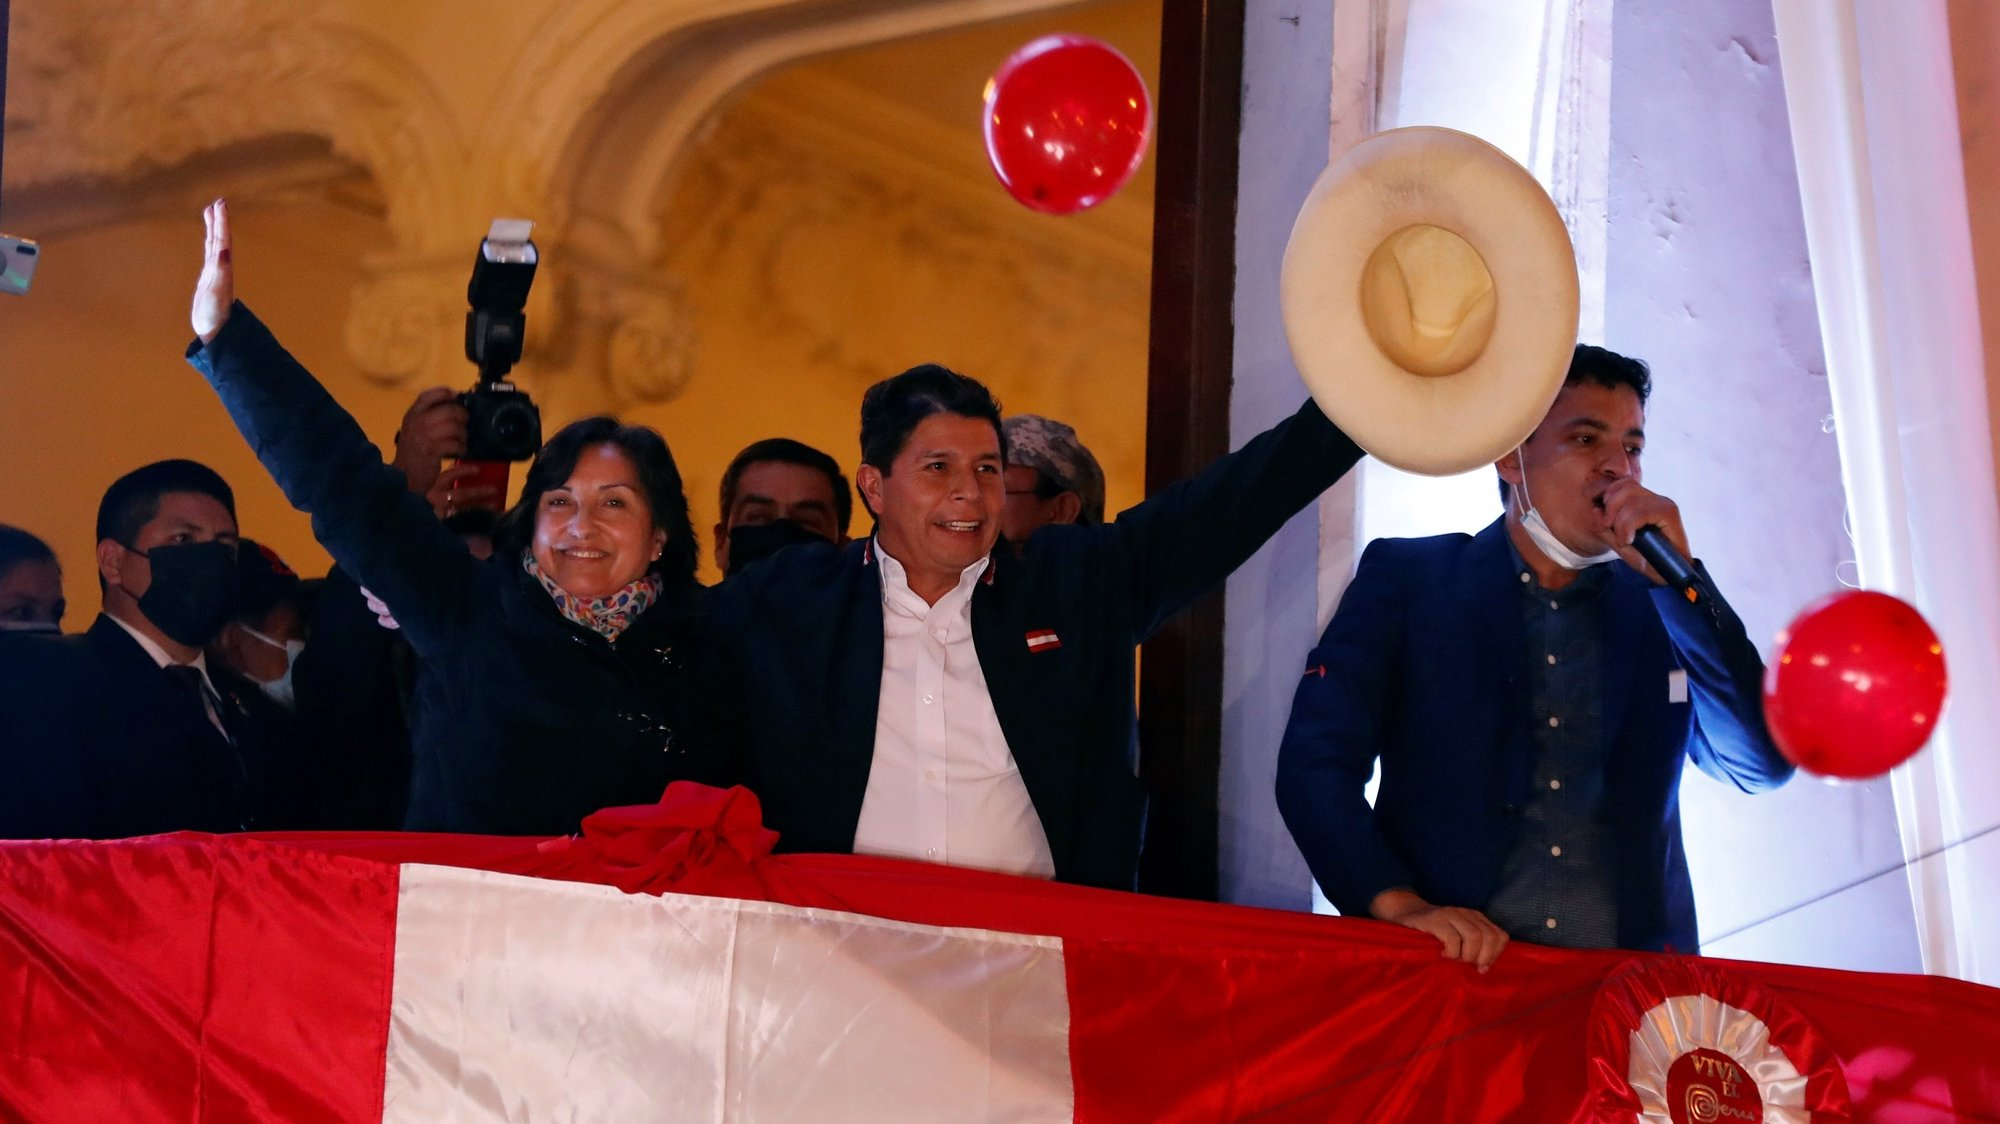 epa09353989 The leftist Pedro Castillo (C), accompanied by his formula to the Vice Presidency Dina Boluarte (L), greets supporters from a balcony after being proclaimed president-elect of the country, in Lima, Peru 19 July 2021. The official proclamation came this Monday, a month and a half after the elections in which he defeated the right-wing Keiko Fujimori, who delayed his appointment with more than a thousand challenges in which she denounced alleged 'fraud' without reliable evidence. After declaring the latest legal appeals presented by Fujimori unfounded, the National Elections Jury (JNE) endorsed the results of the 06 June vote, where Castillo obtained 50.12% of the valid votes, a narrow victory by just 44,263 votes over Fujimori.  EPA/Paolo Aguilar